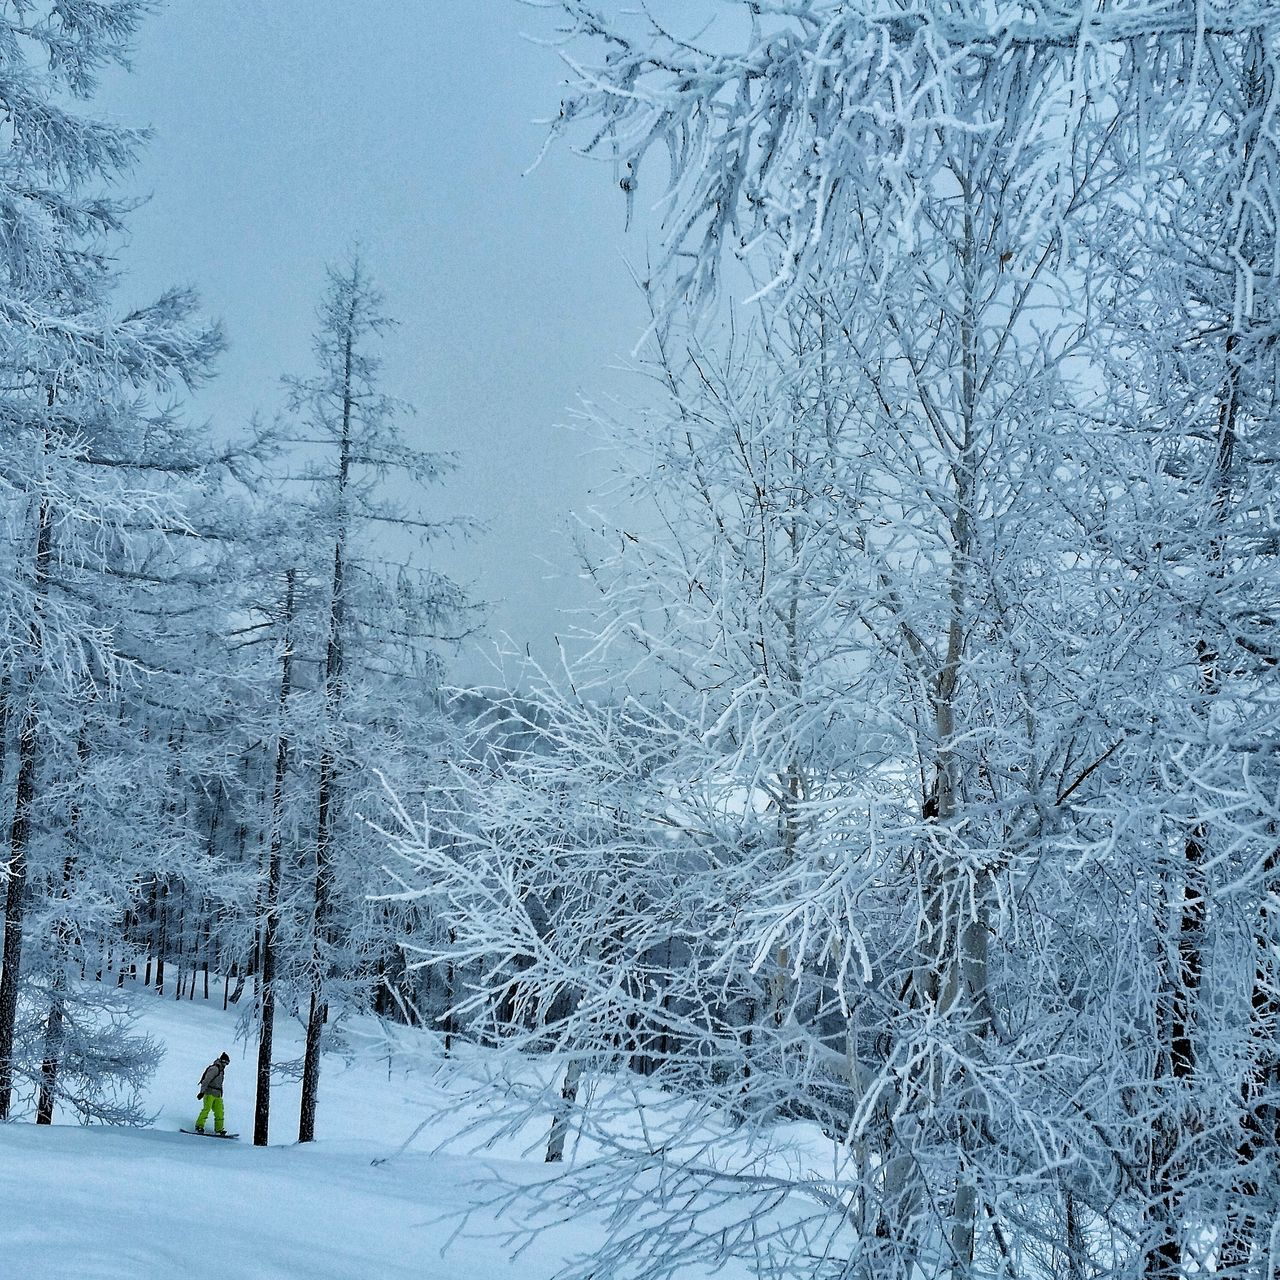 Tree Cold Temperature Nature Sky Snow Beauty In Nature Snowing Outdoors Day Snow Sports Snowboard Freeride Winter Forest Snow Trees No People Flock Of Birds Close-up